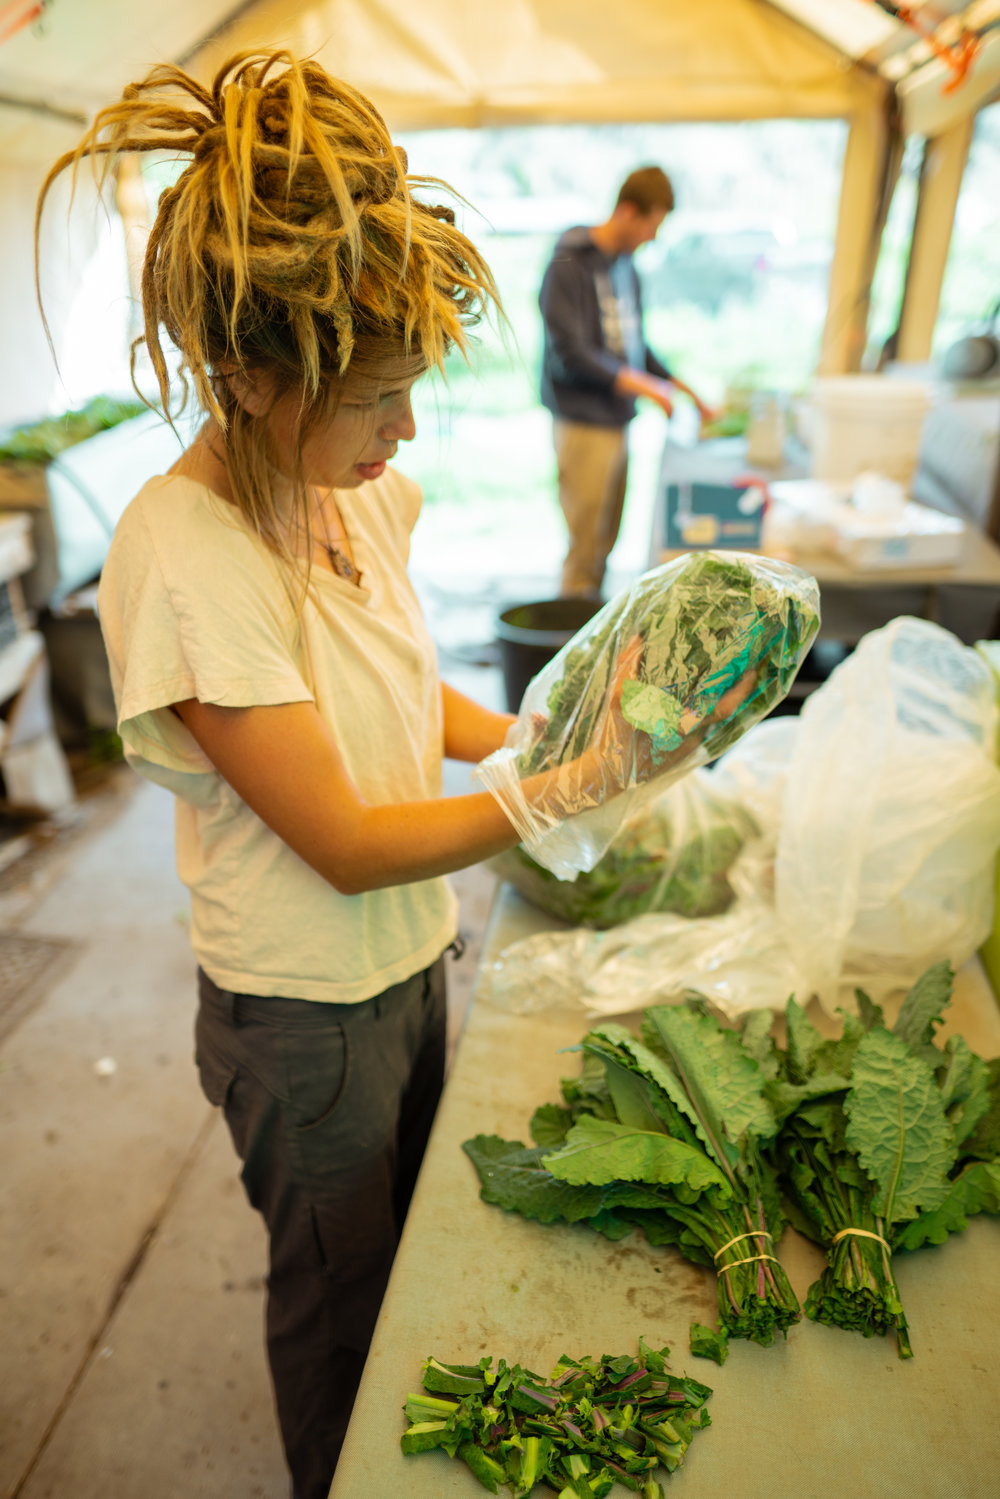 Kacy Senger packaging greens at Sprig & Root Farm in Clarkston, Montana.